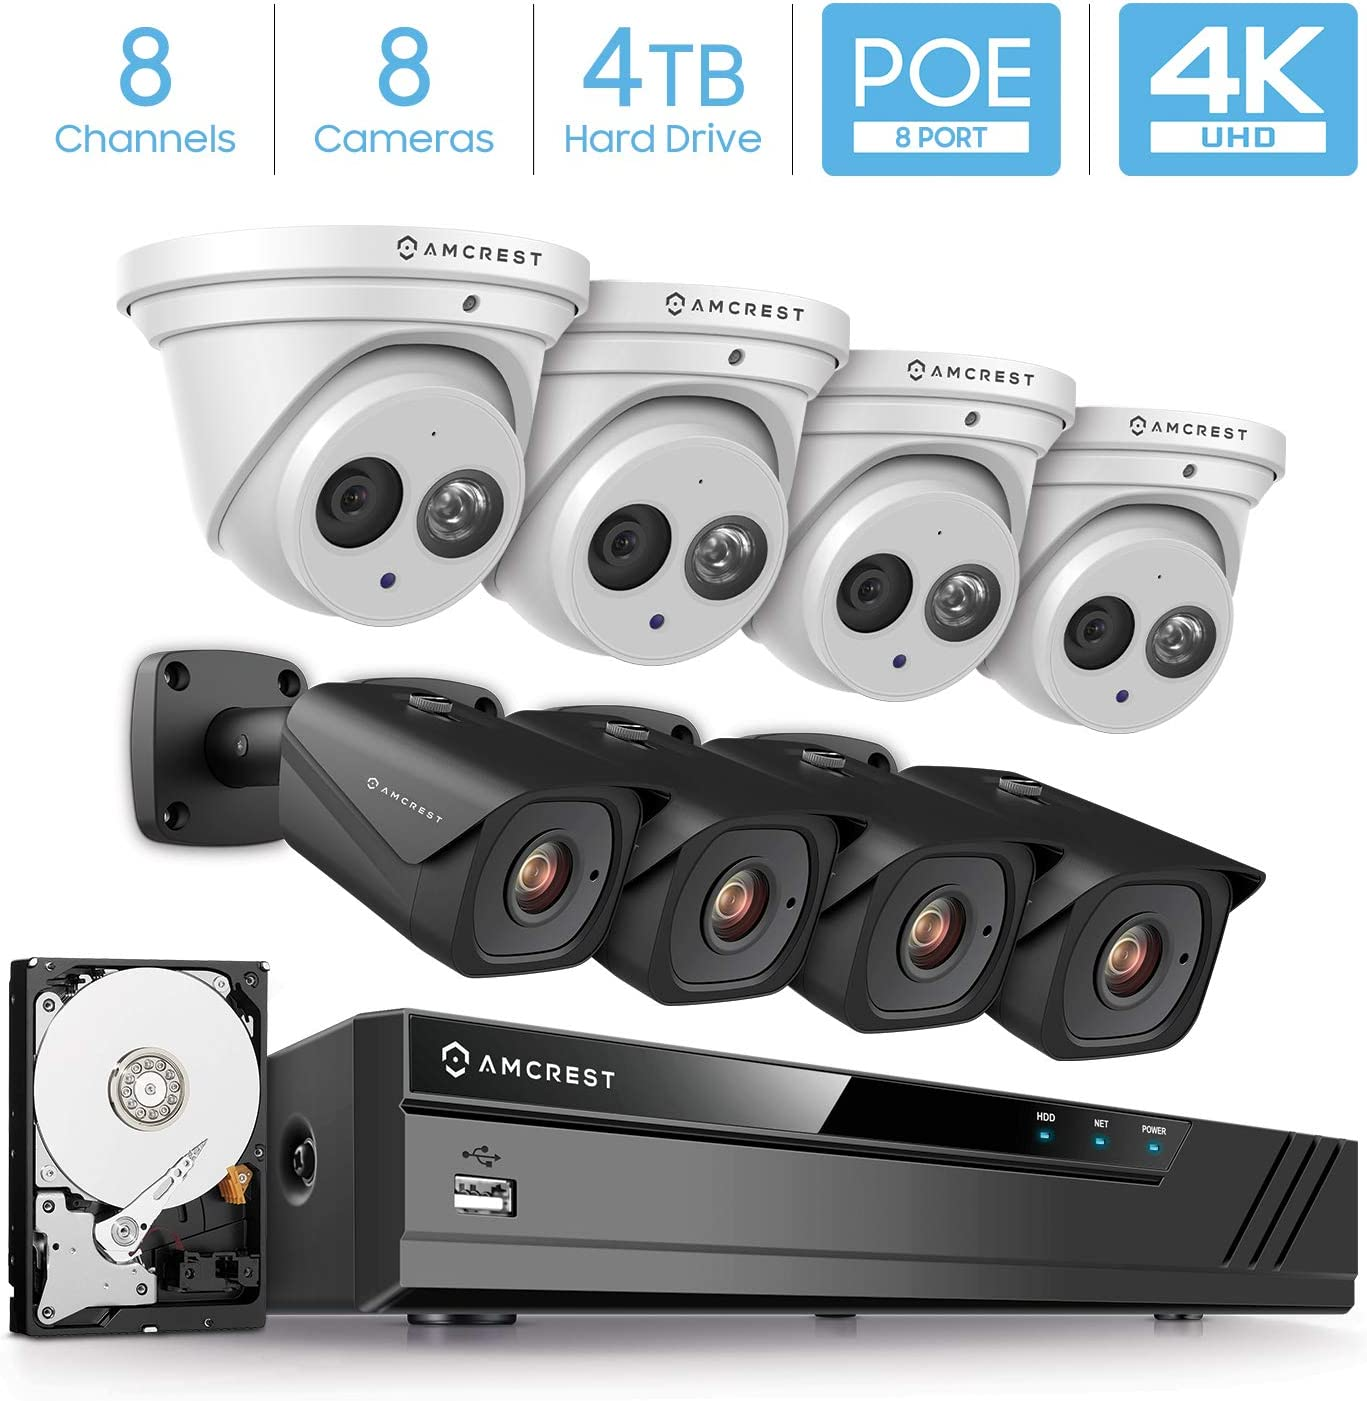 Amcrest 4K Security Camera System w 4K 8CH PoE NVR, 8 x 4K 8-Megapixel IP67 Weatherproof Metal Turret Dome Bullet POE IP Cameras, Pre-Installed 4TB HDD, NV4108E-IP8M-T2499EW4-IP8M-2496EB4-4TB